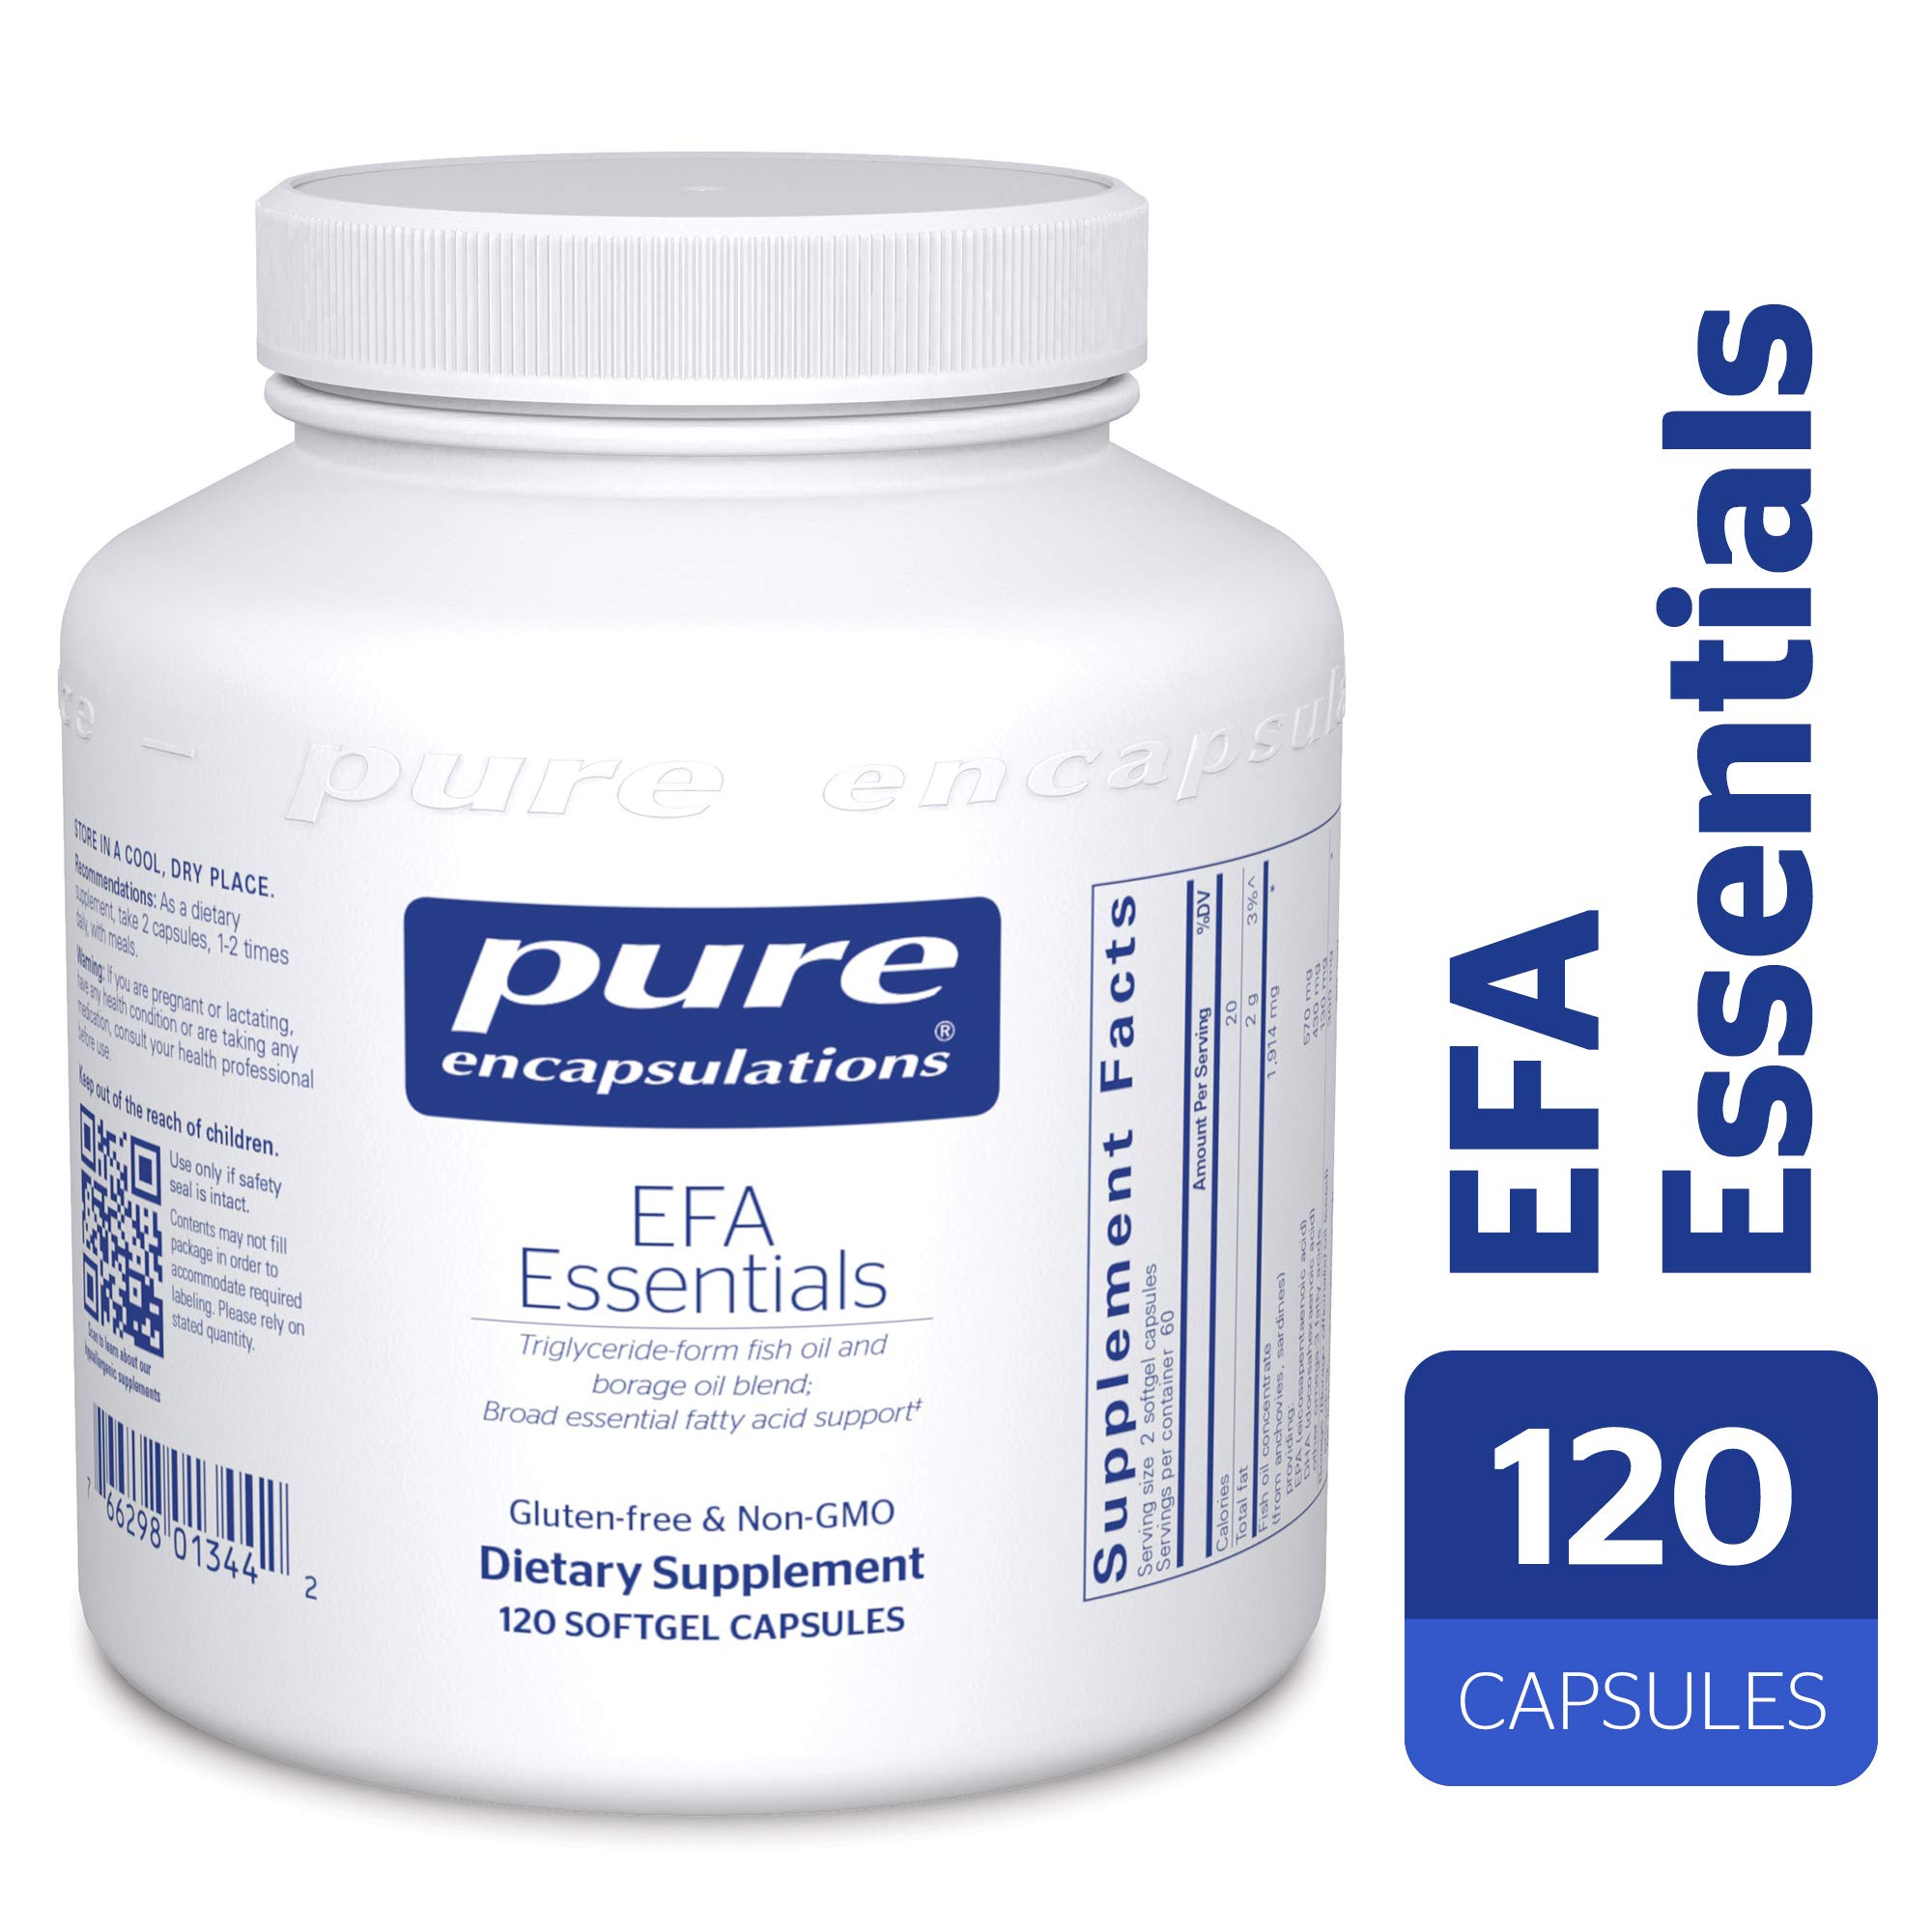 Pure Encapsulations - EFA Essentials - Triglyceride-Form Fish Oil and Borage Oil Blend - 120 Softgel Capsules by Pure Encapsulations